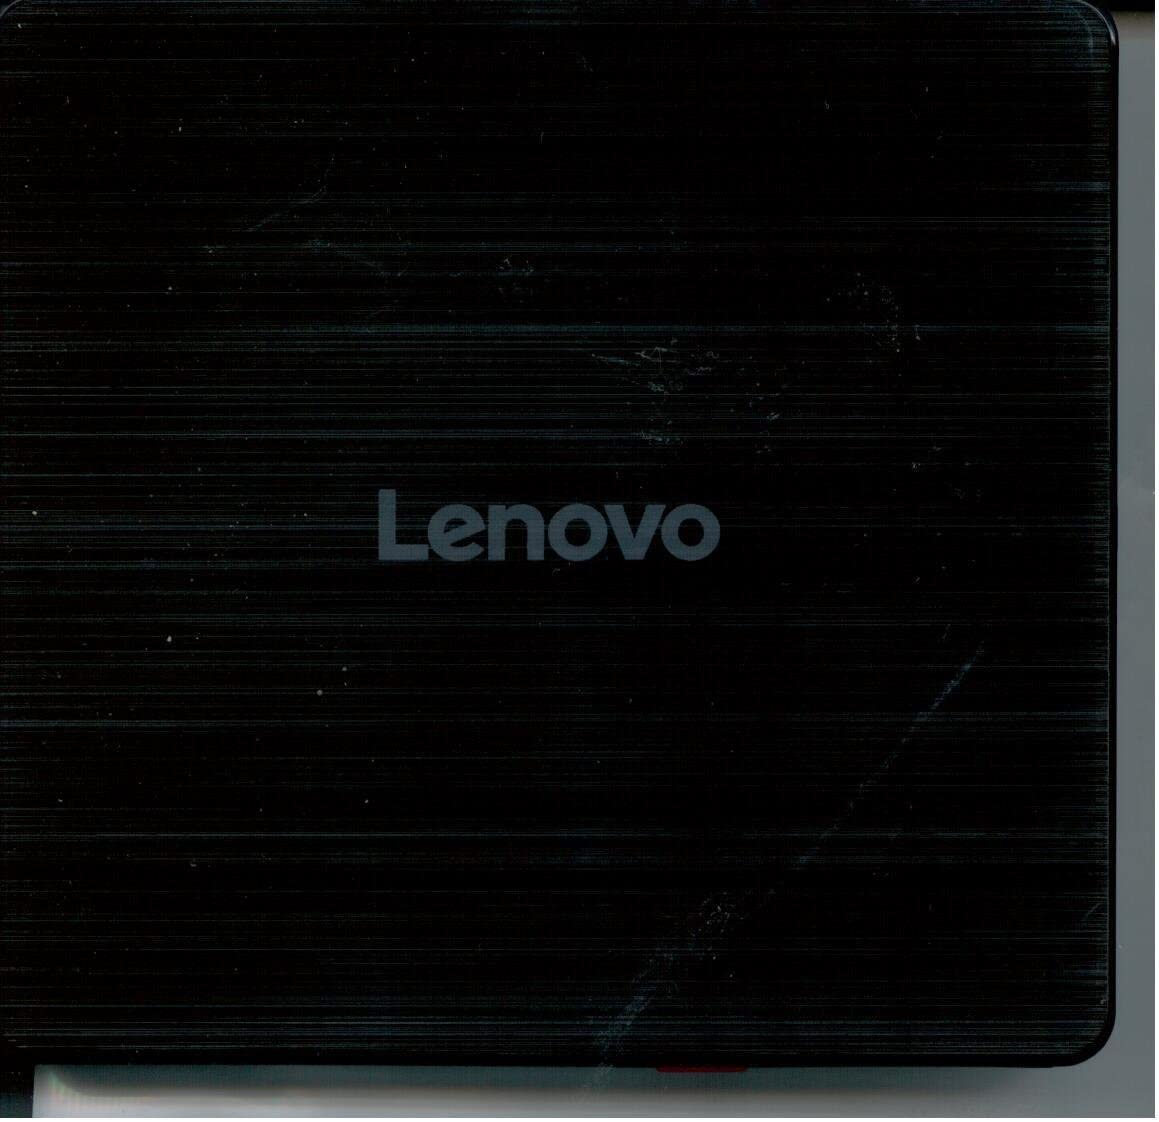 Lenovo GP60NB60 External USB Portable DVD Burner